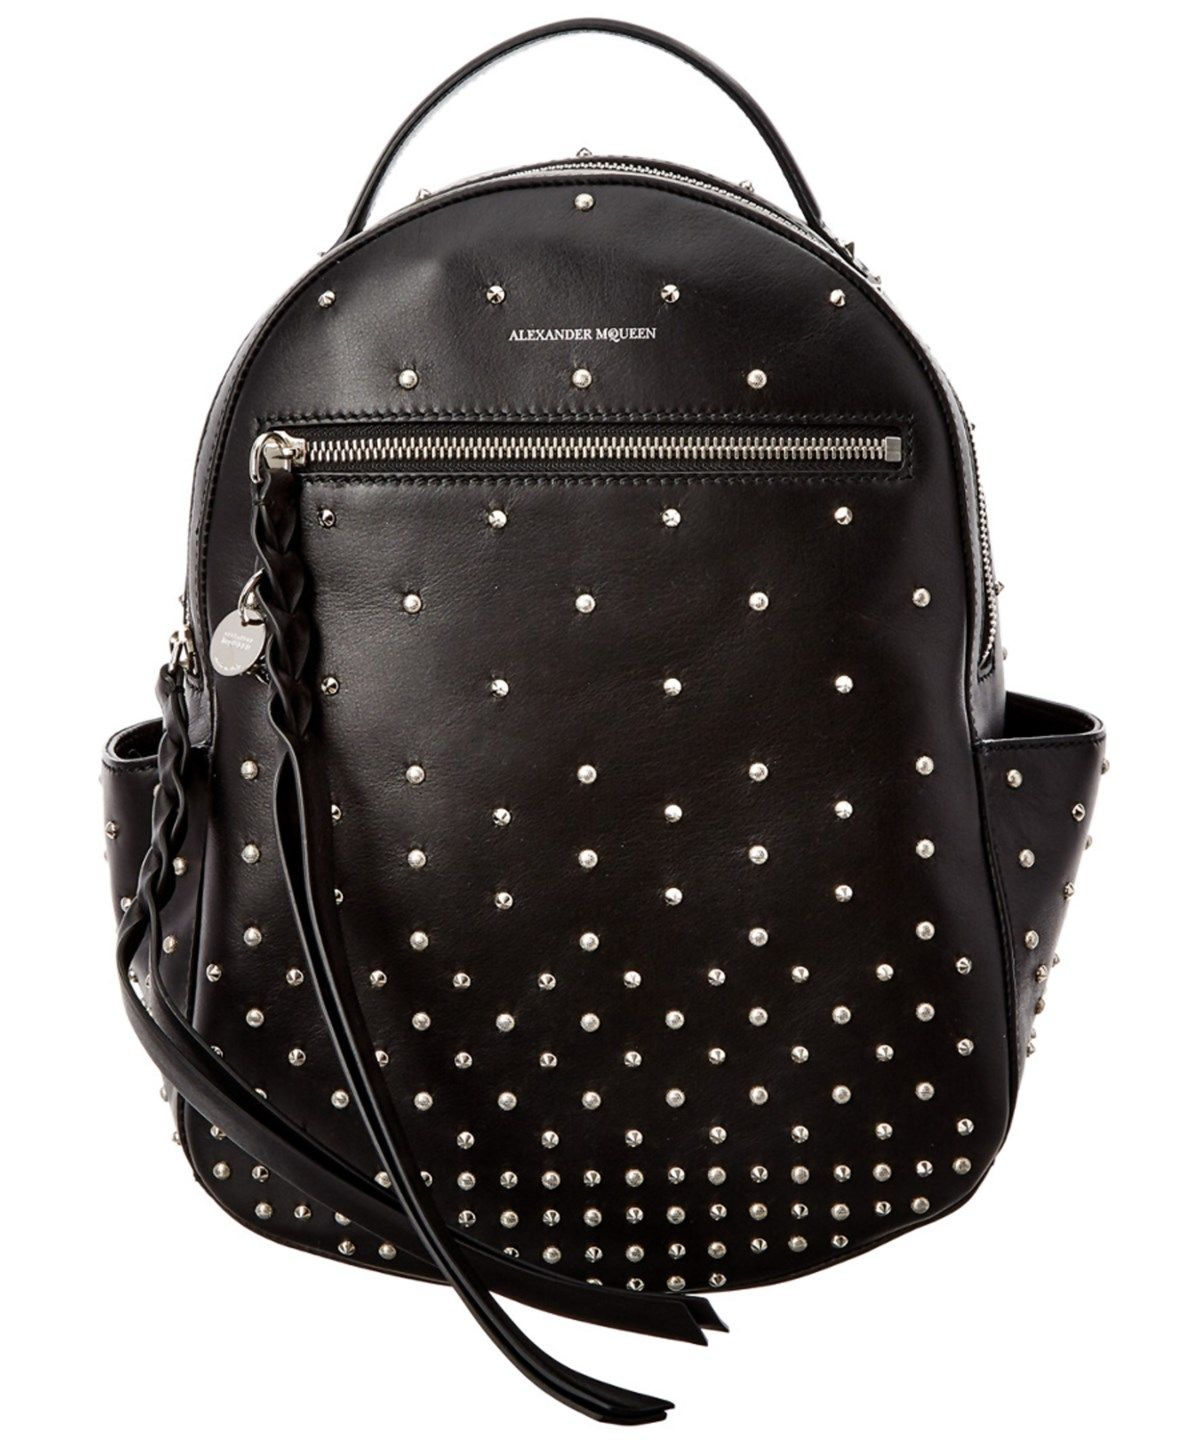 8f91ac68260c ALEXANDER MCQUEEN Alexander Mcqueen Studded Leather Chain Strap Backpack .   alexandermcqueen  bags  leather  lining  backpacks